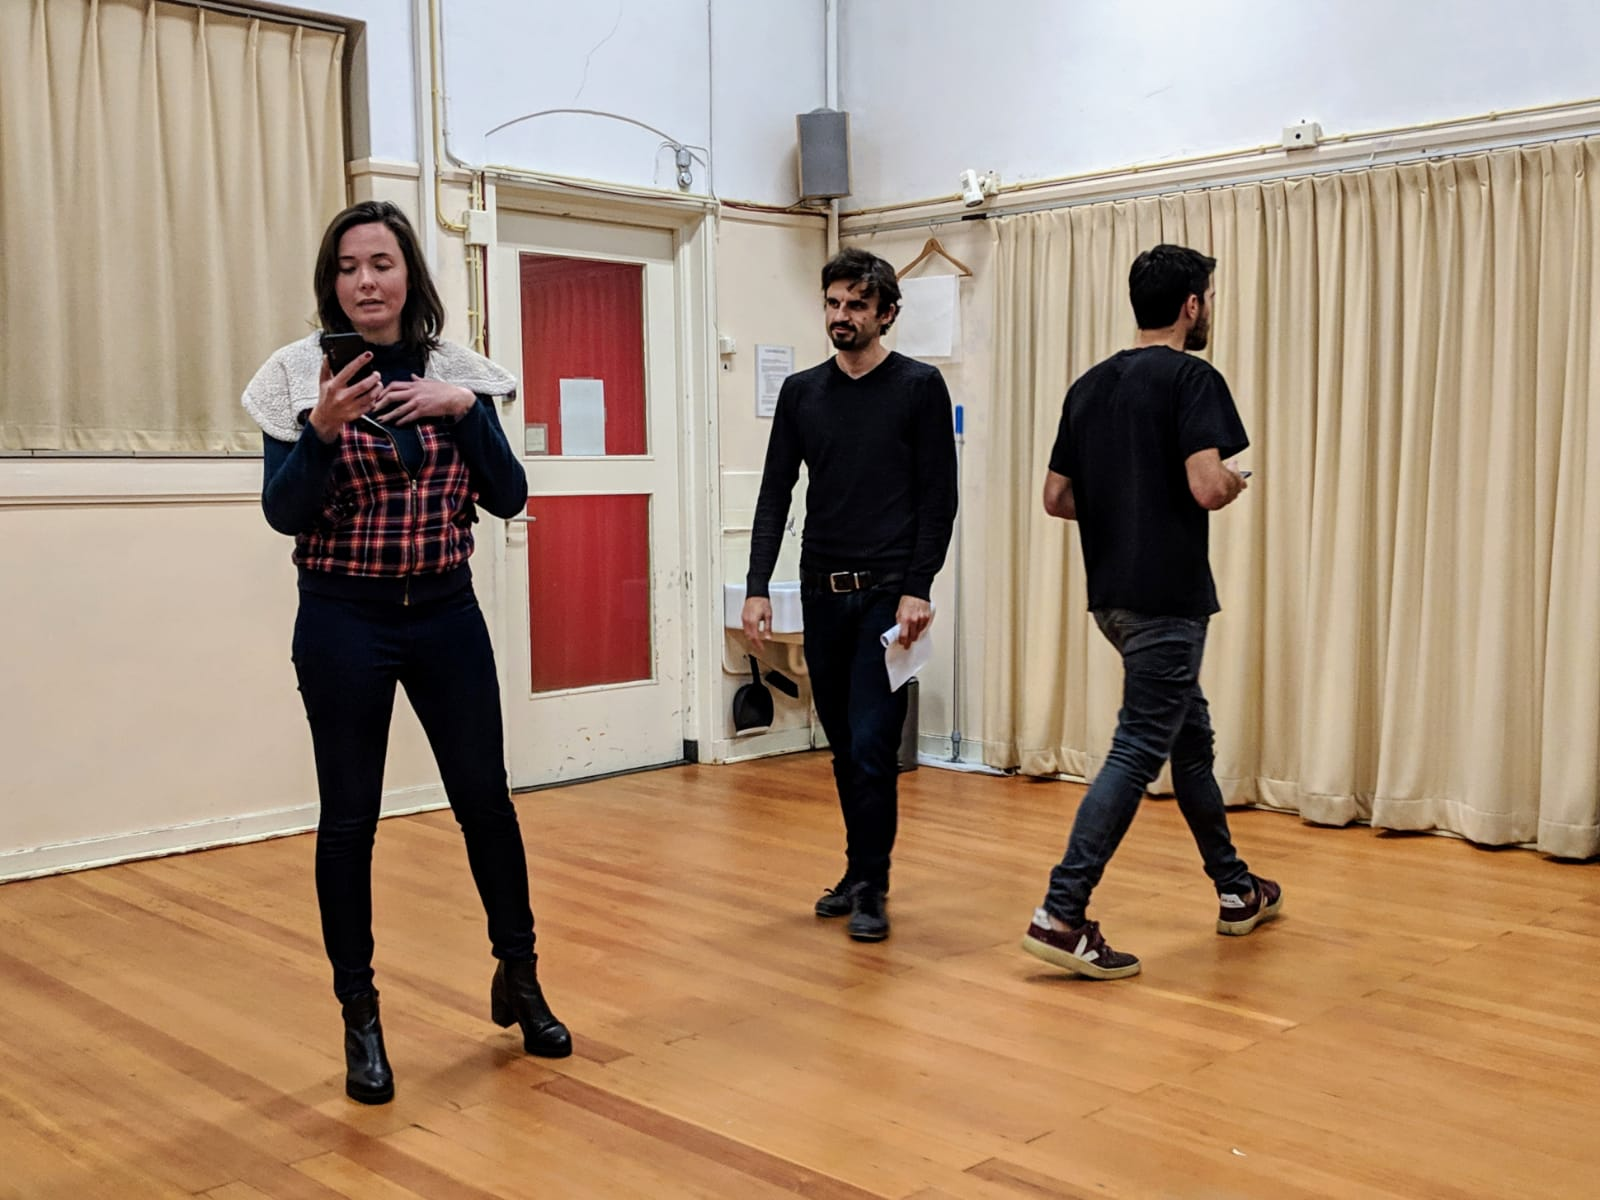 Acting Class Act Attack. Three people, two men one woman, read lines. The woman is on her phone, the two men walk up and down.